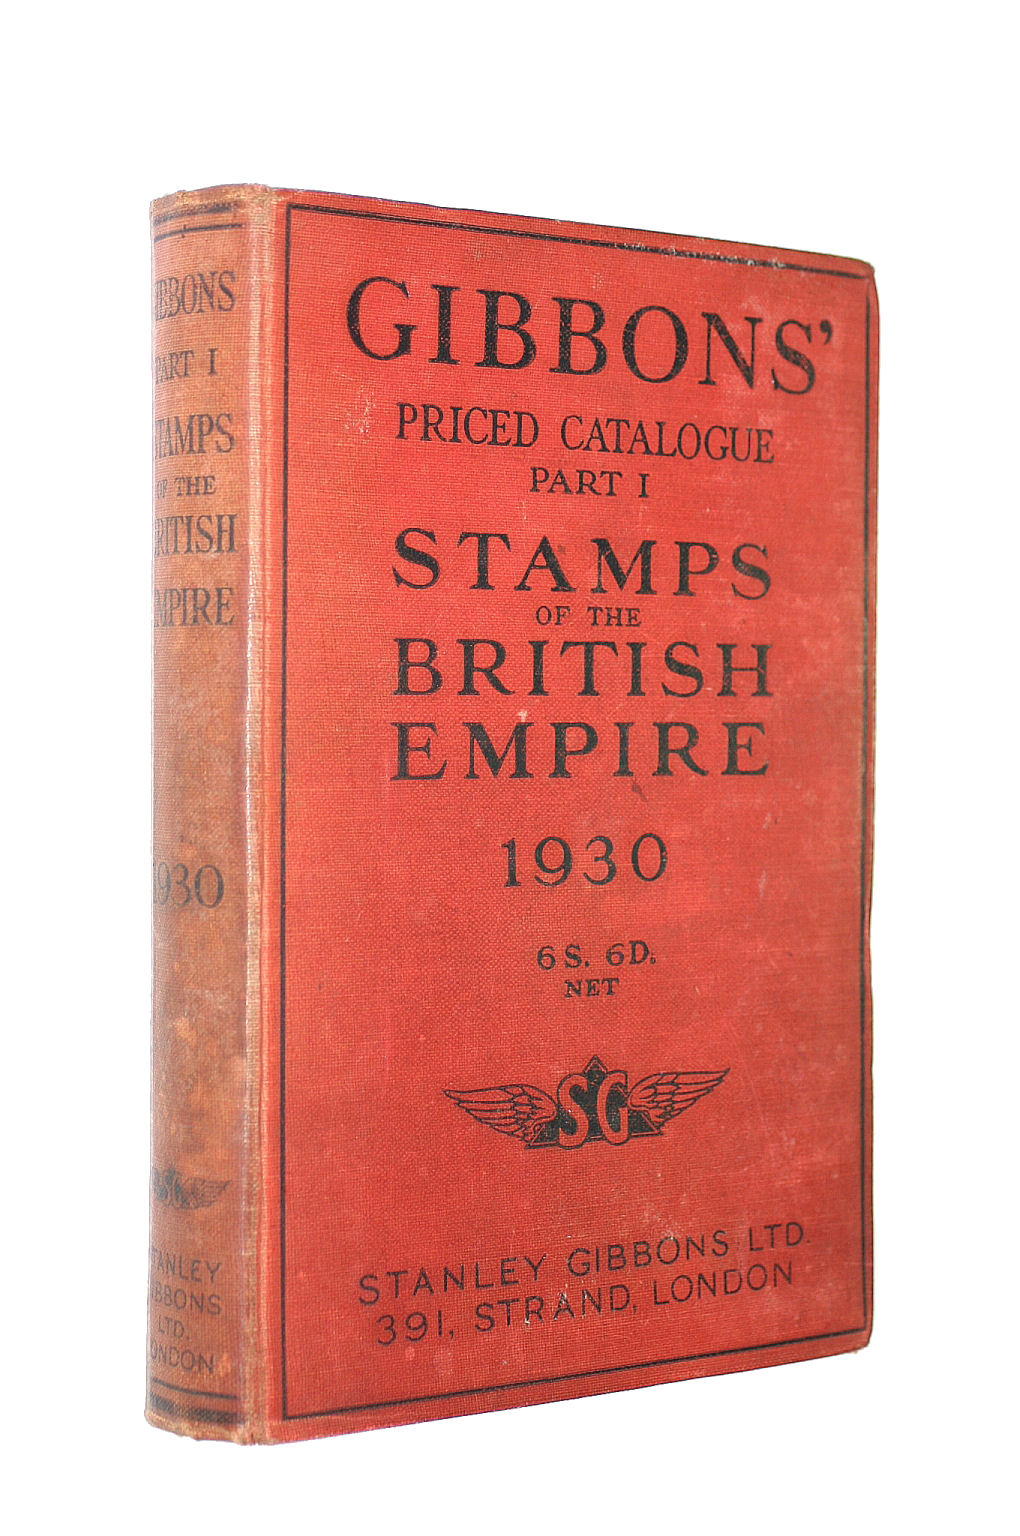 Image for Gibbons' Priced Catalogue Part I Stamps Of The British Empire 1930